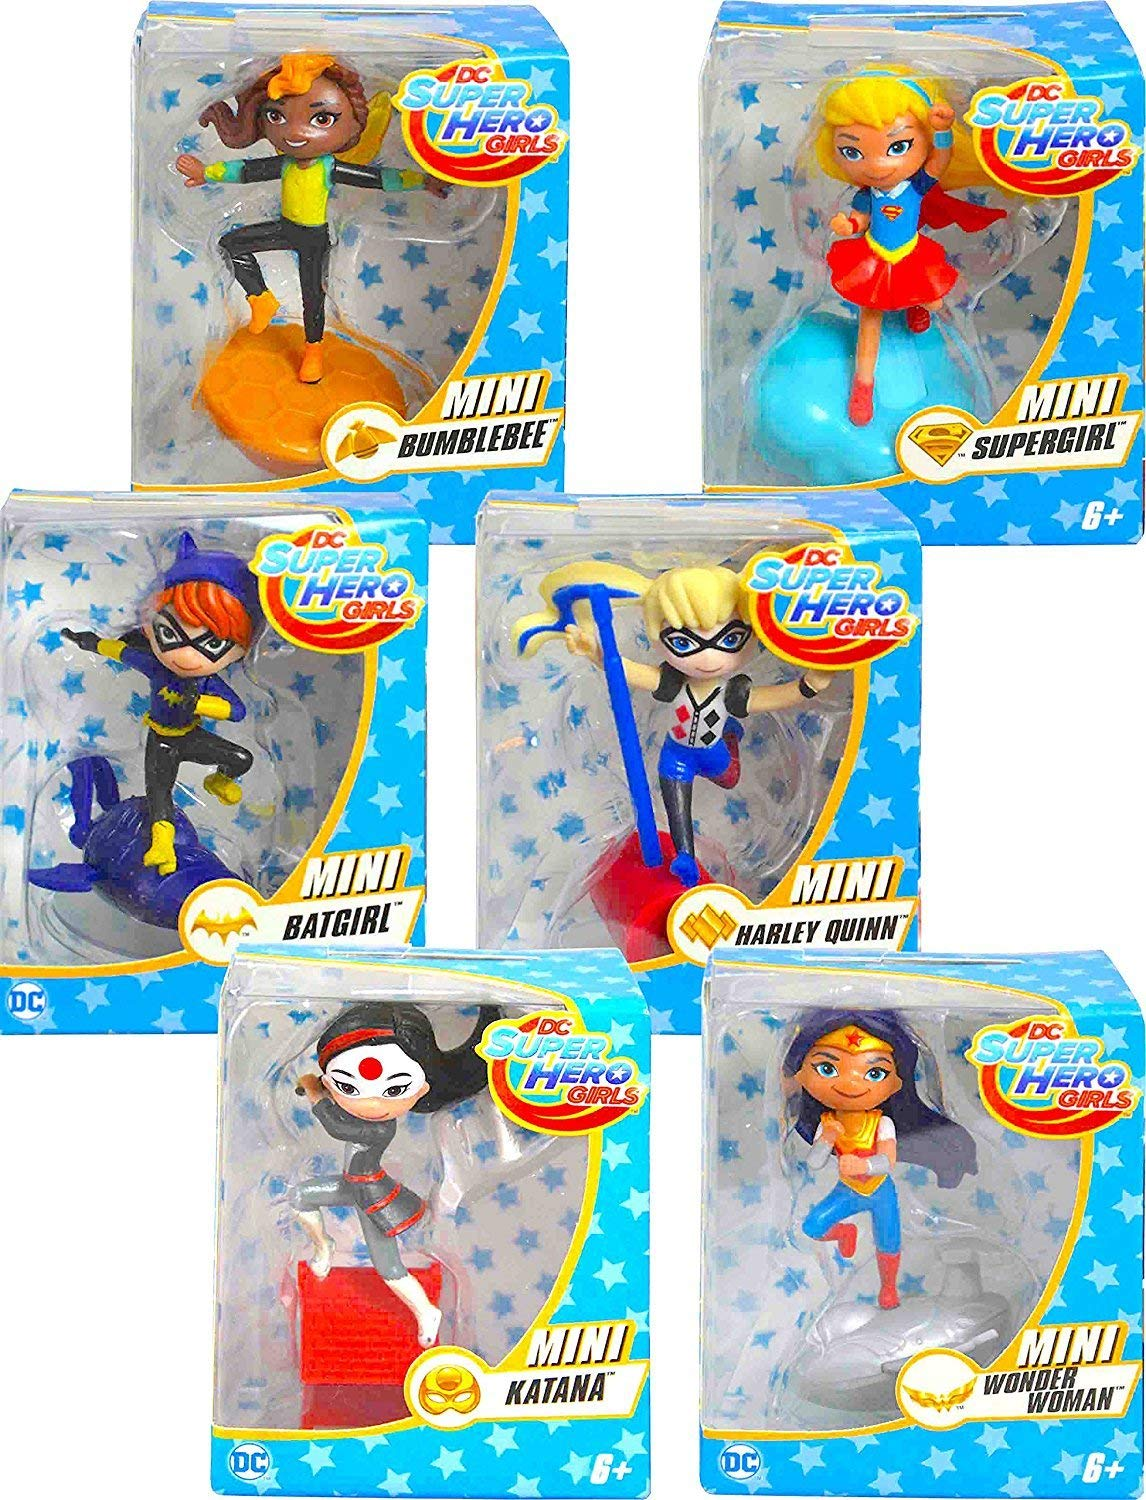 DC Comics DC Super Hero Girls Ultimate Collection 6 Action Figure by DC Comics